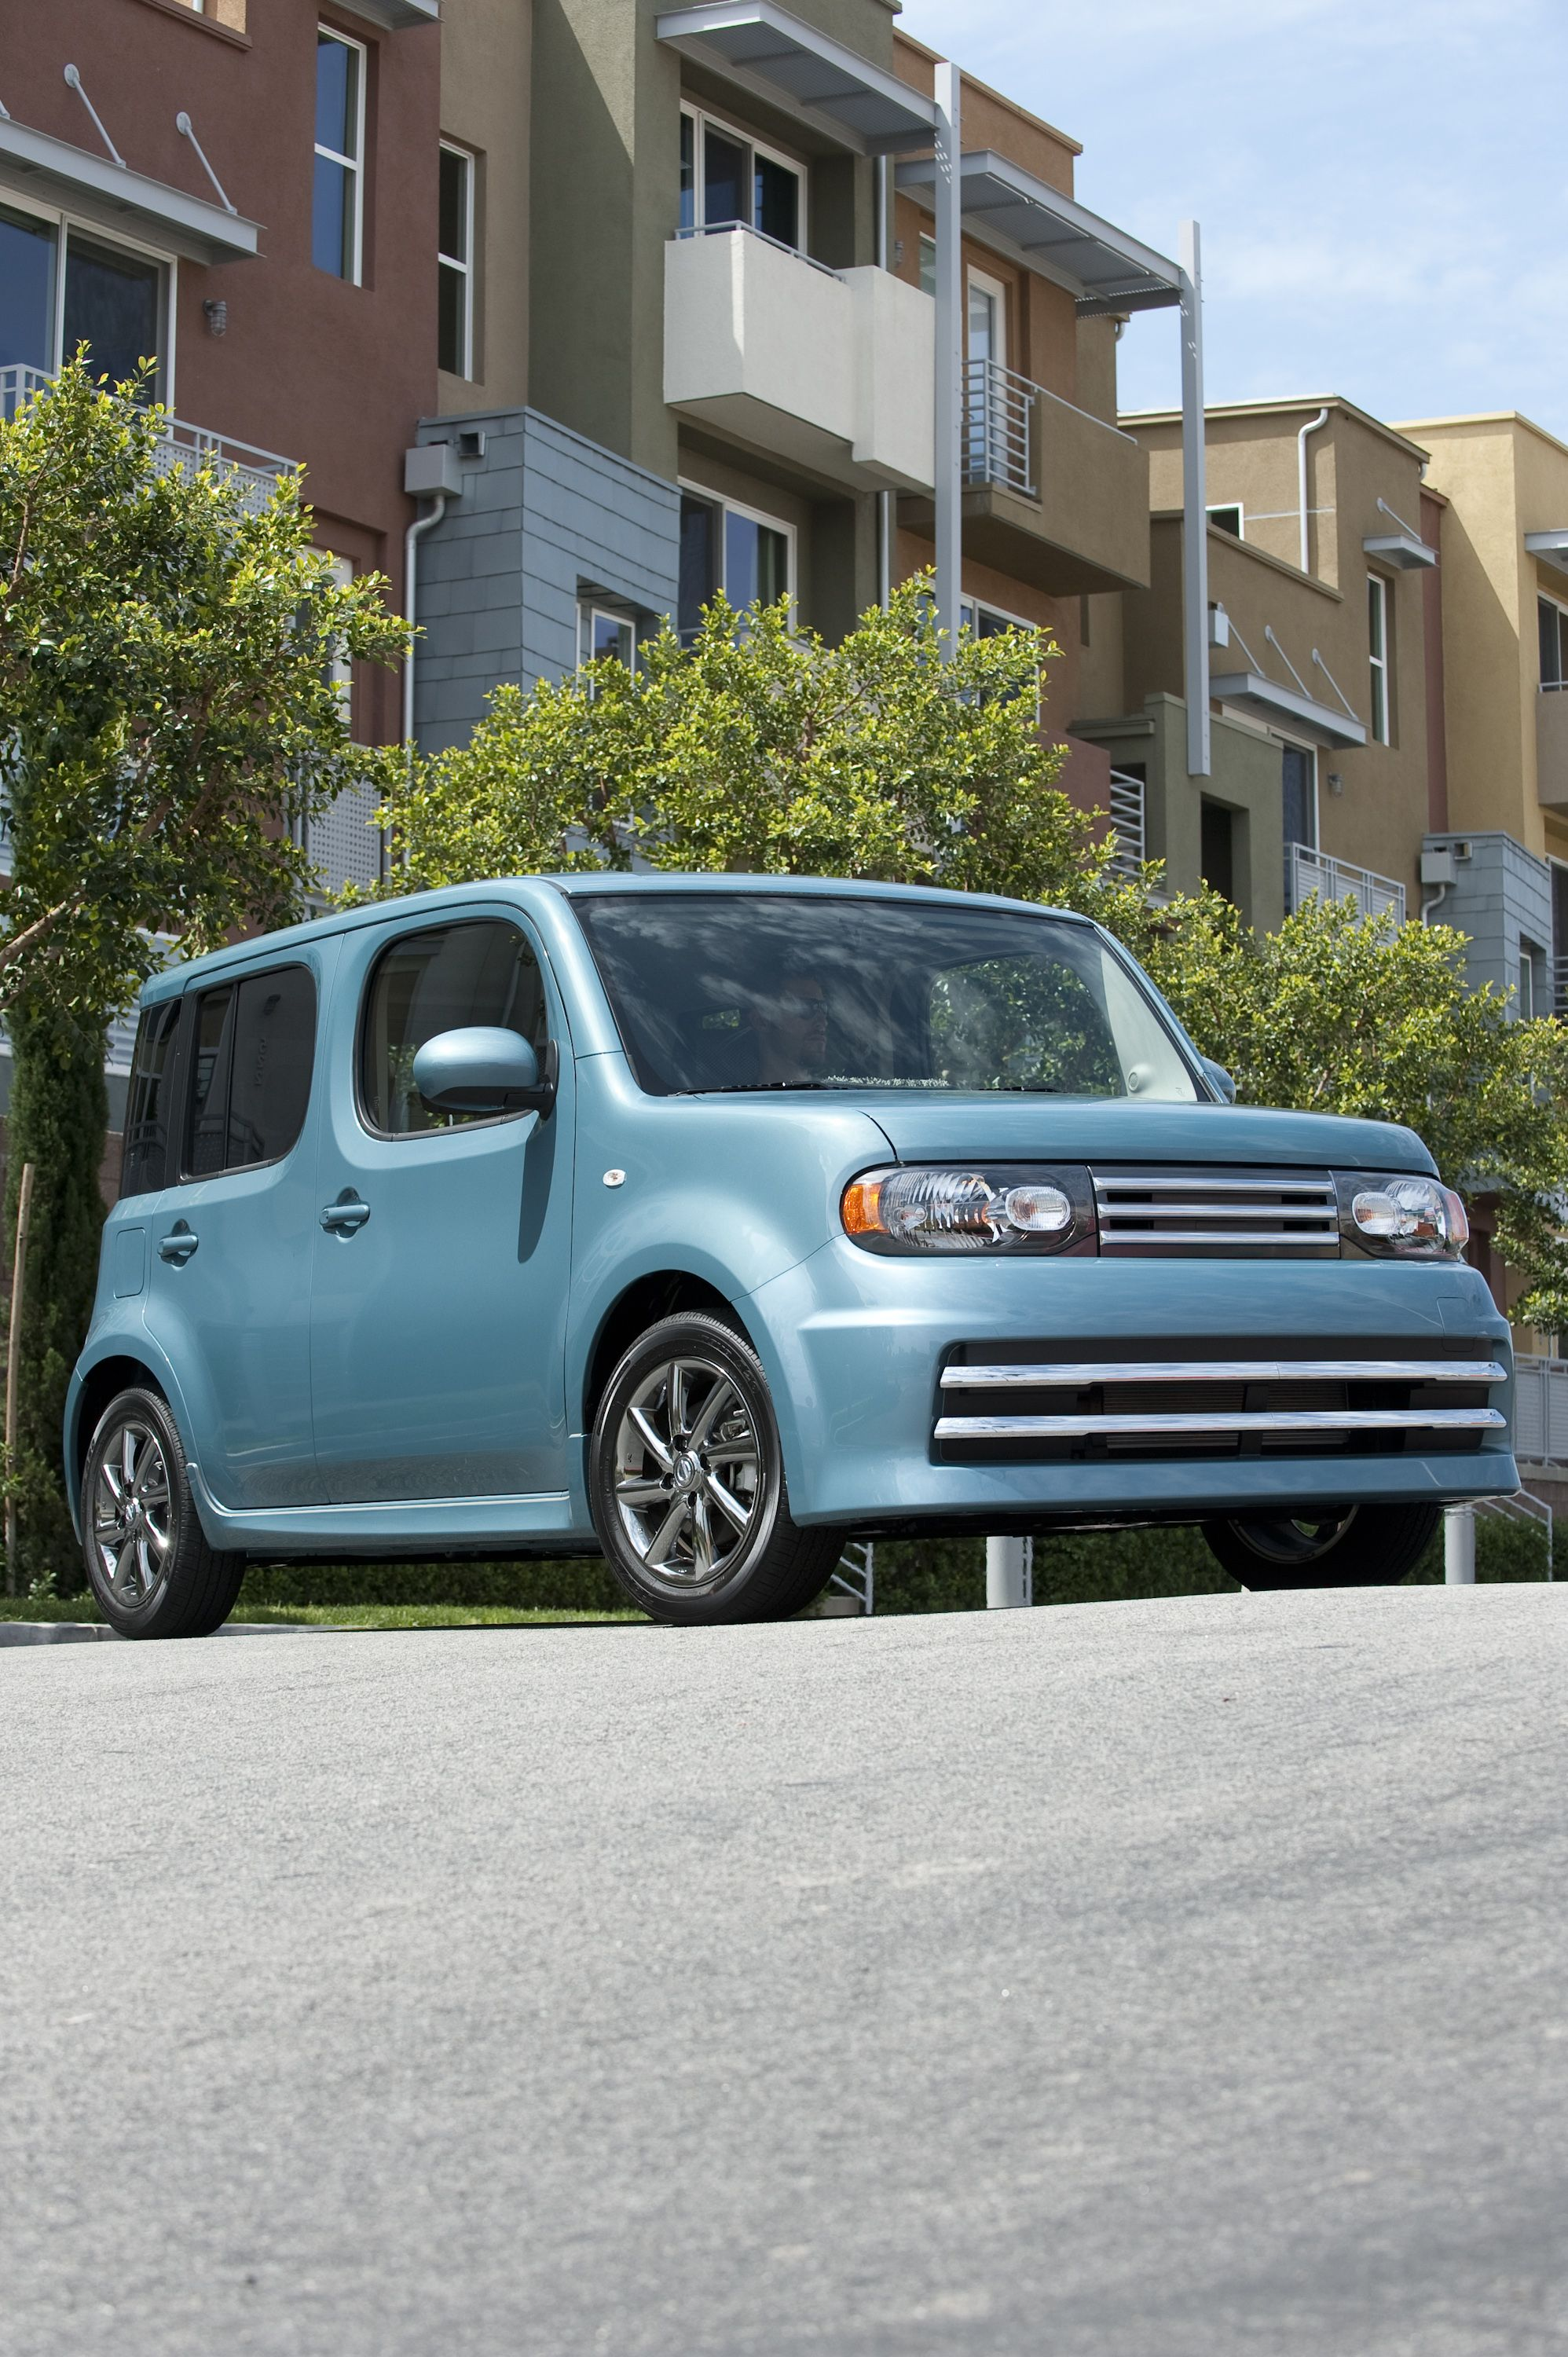 Make Model Year Color Dailydrive Nissan Cube